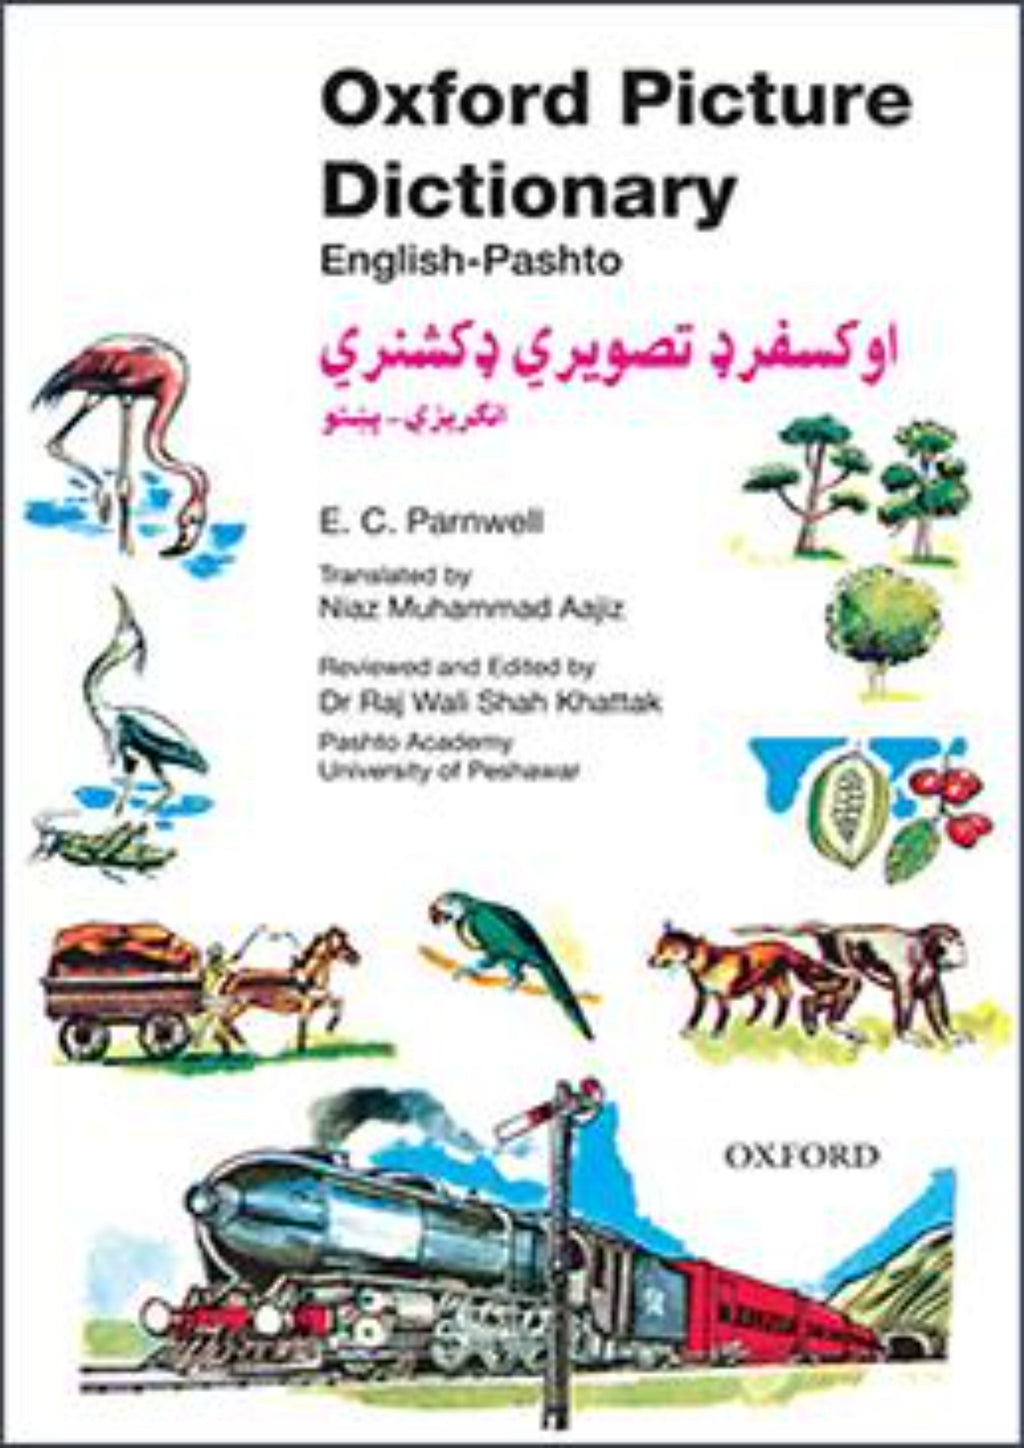 Oxford Picture Dictionary English-Pashto